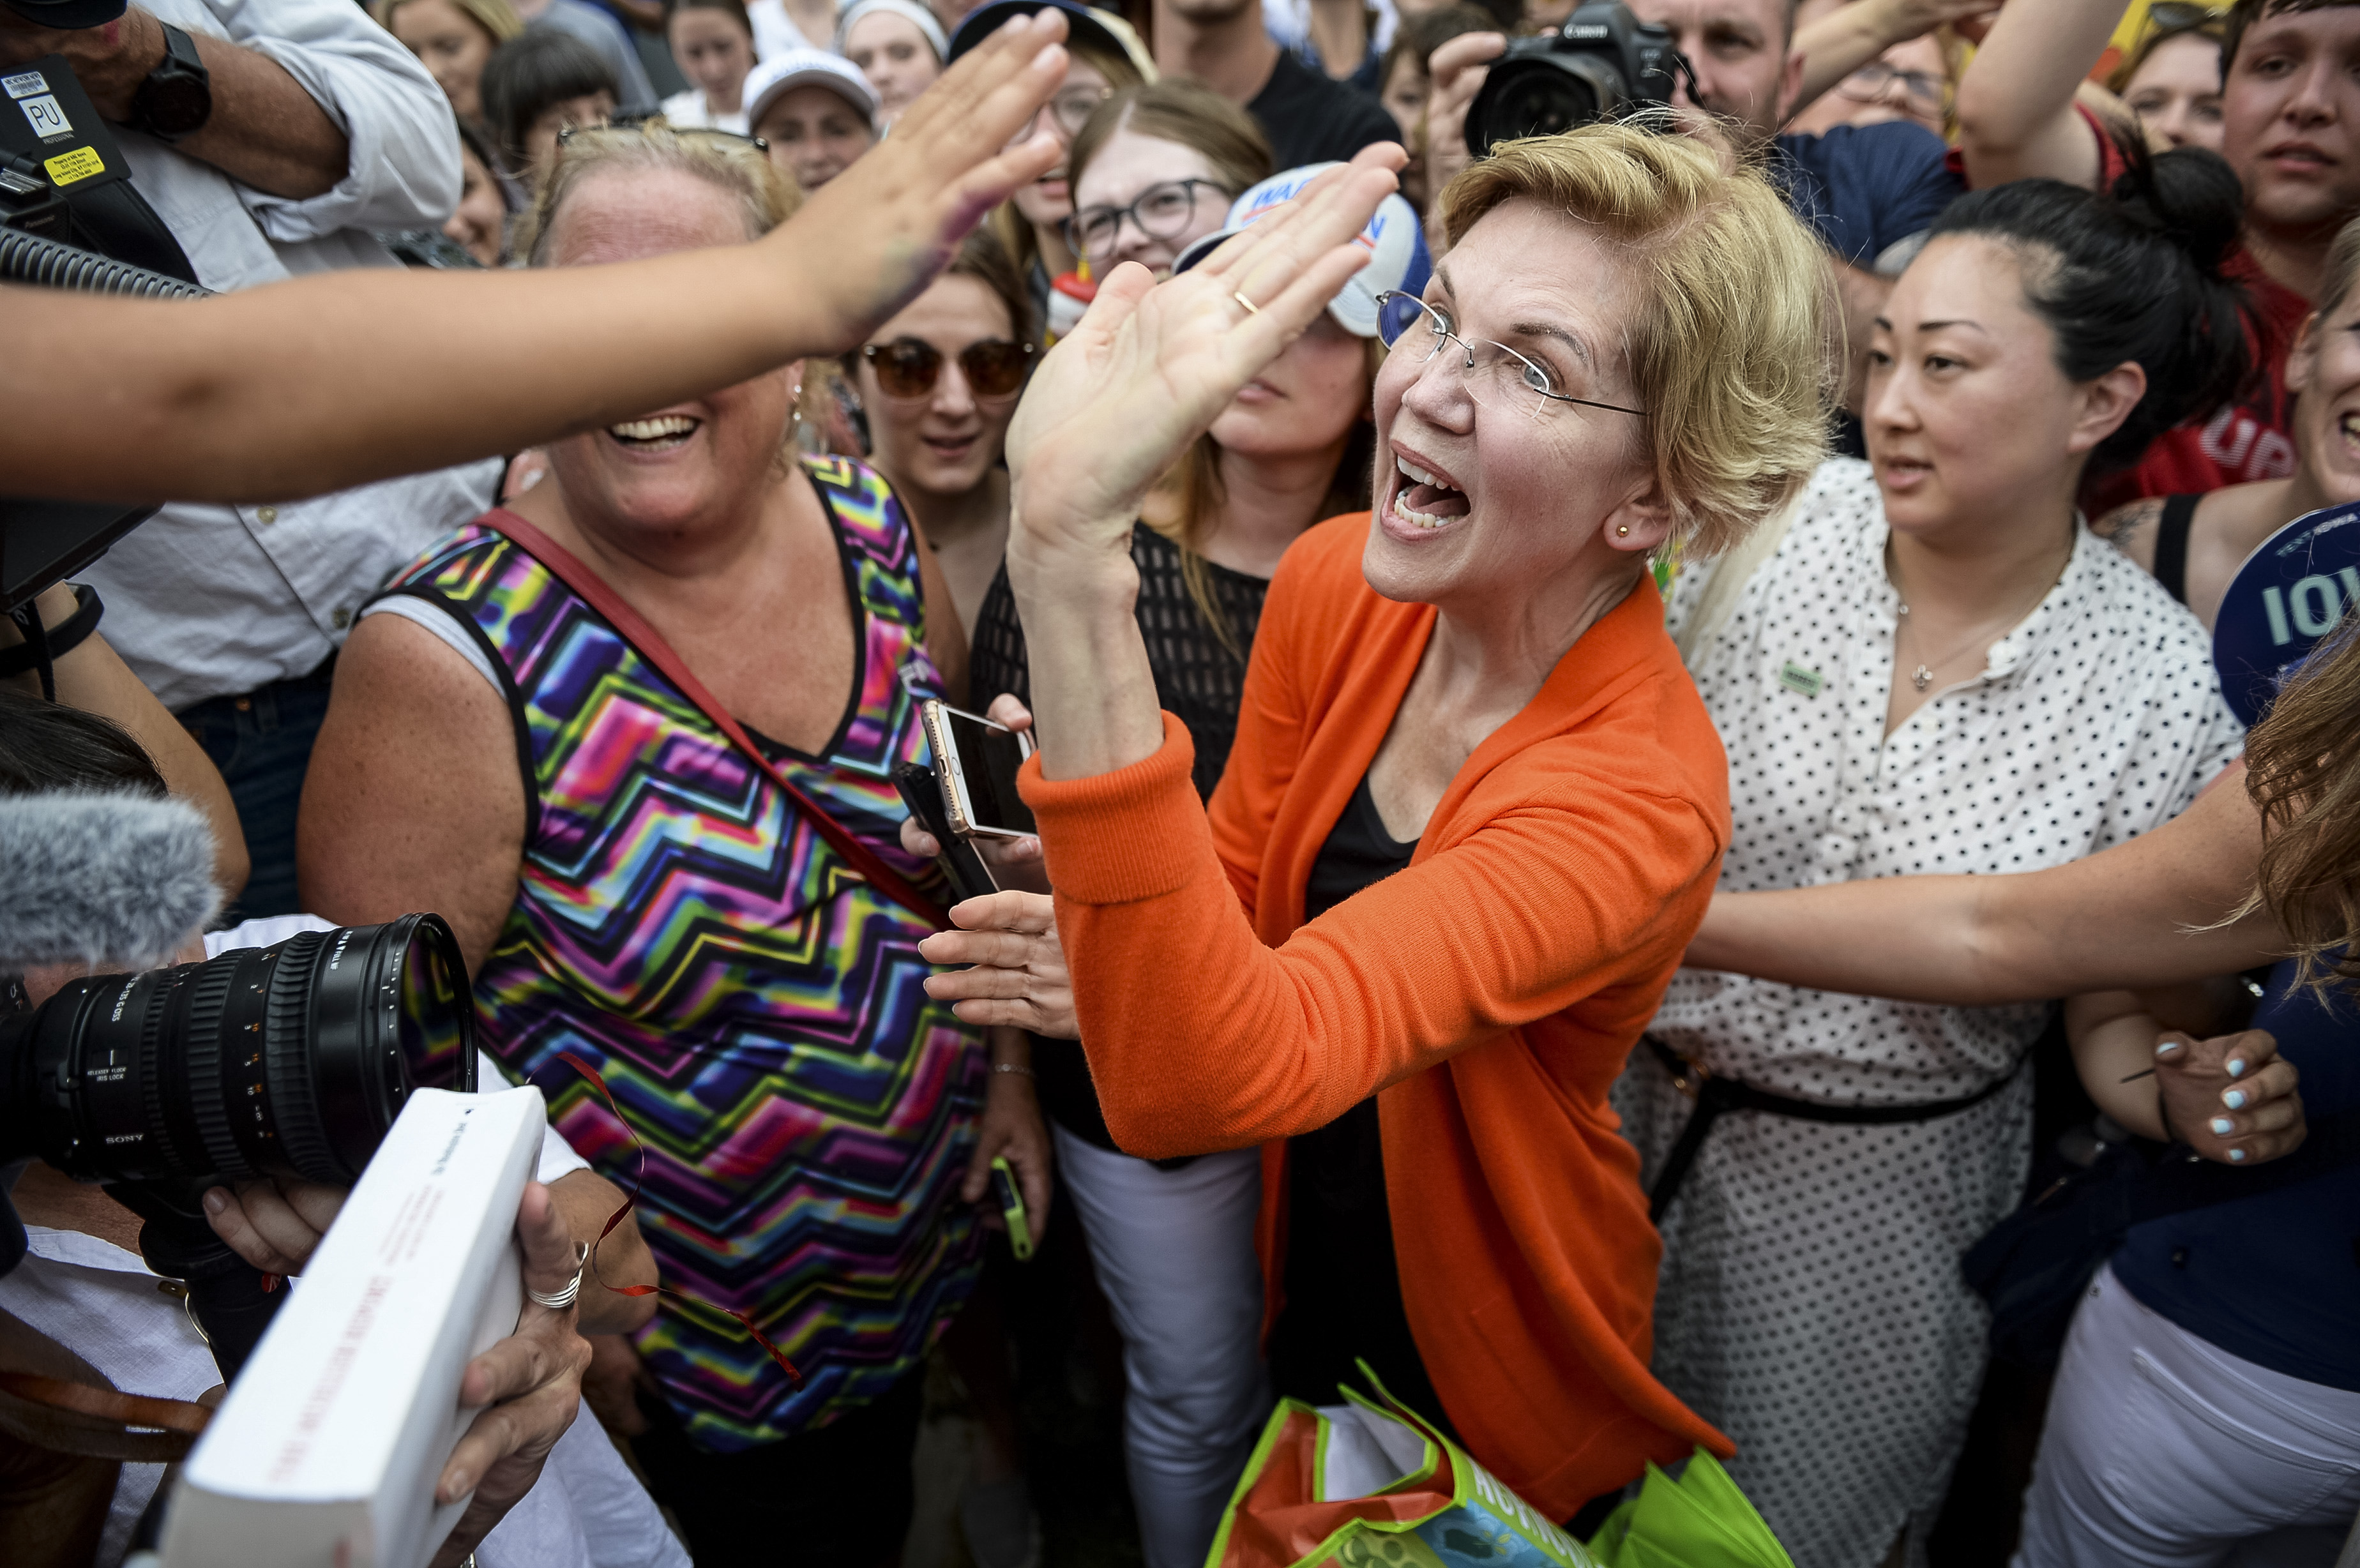 UNITED STATES - AUGUST 10: Democratic presidential candidate Sen. Elizabeth Warren, D-Mass., high fives a fairgoer at the Iowa State Fair on Saturday August 10, 2019. (Photo by Caroline Brehman/CQ Roll Call)